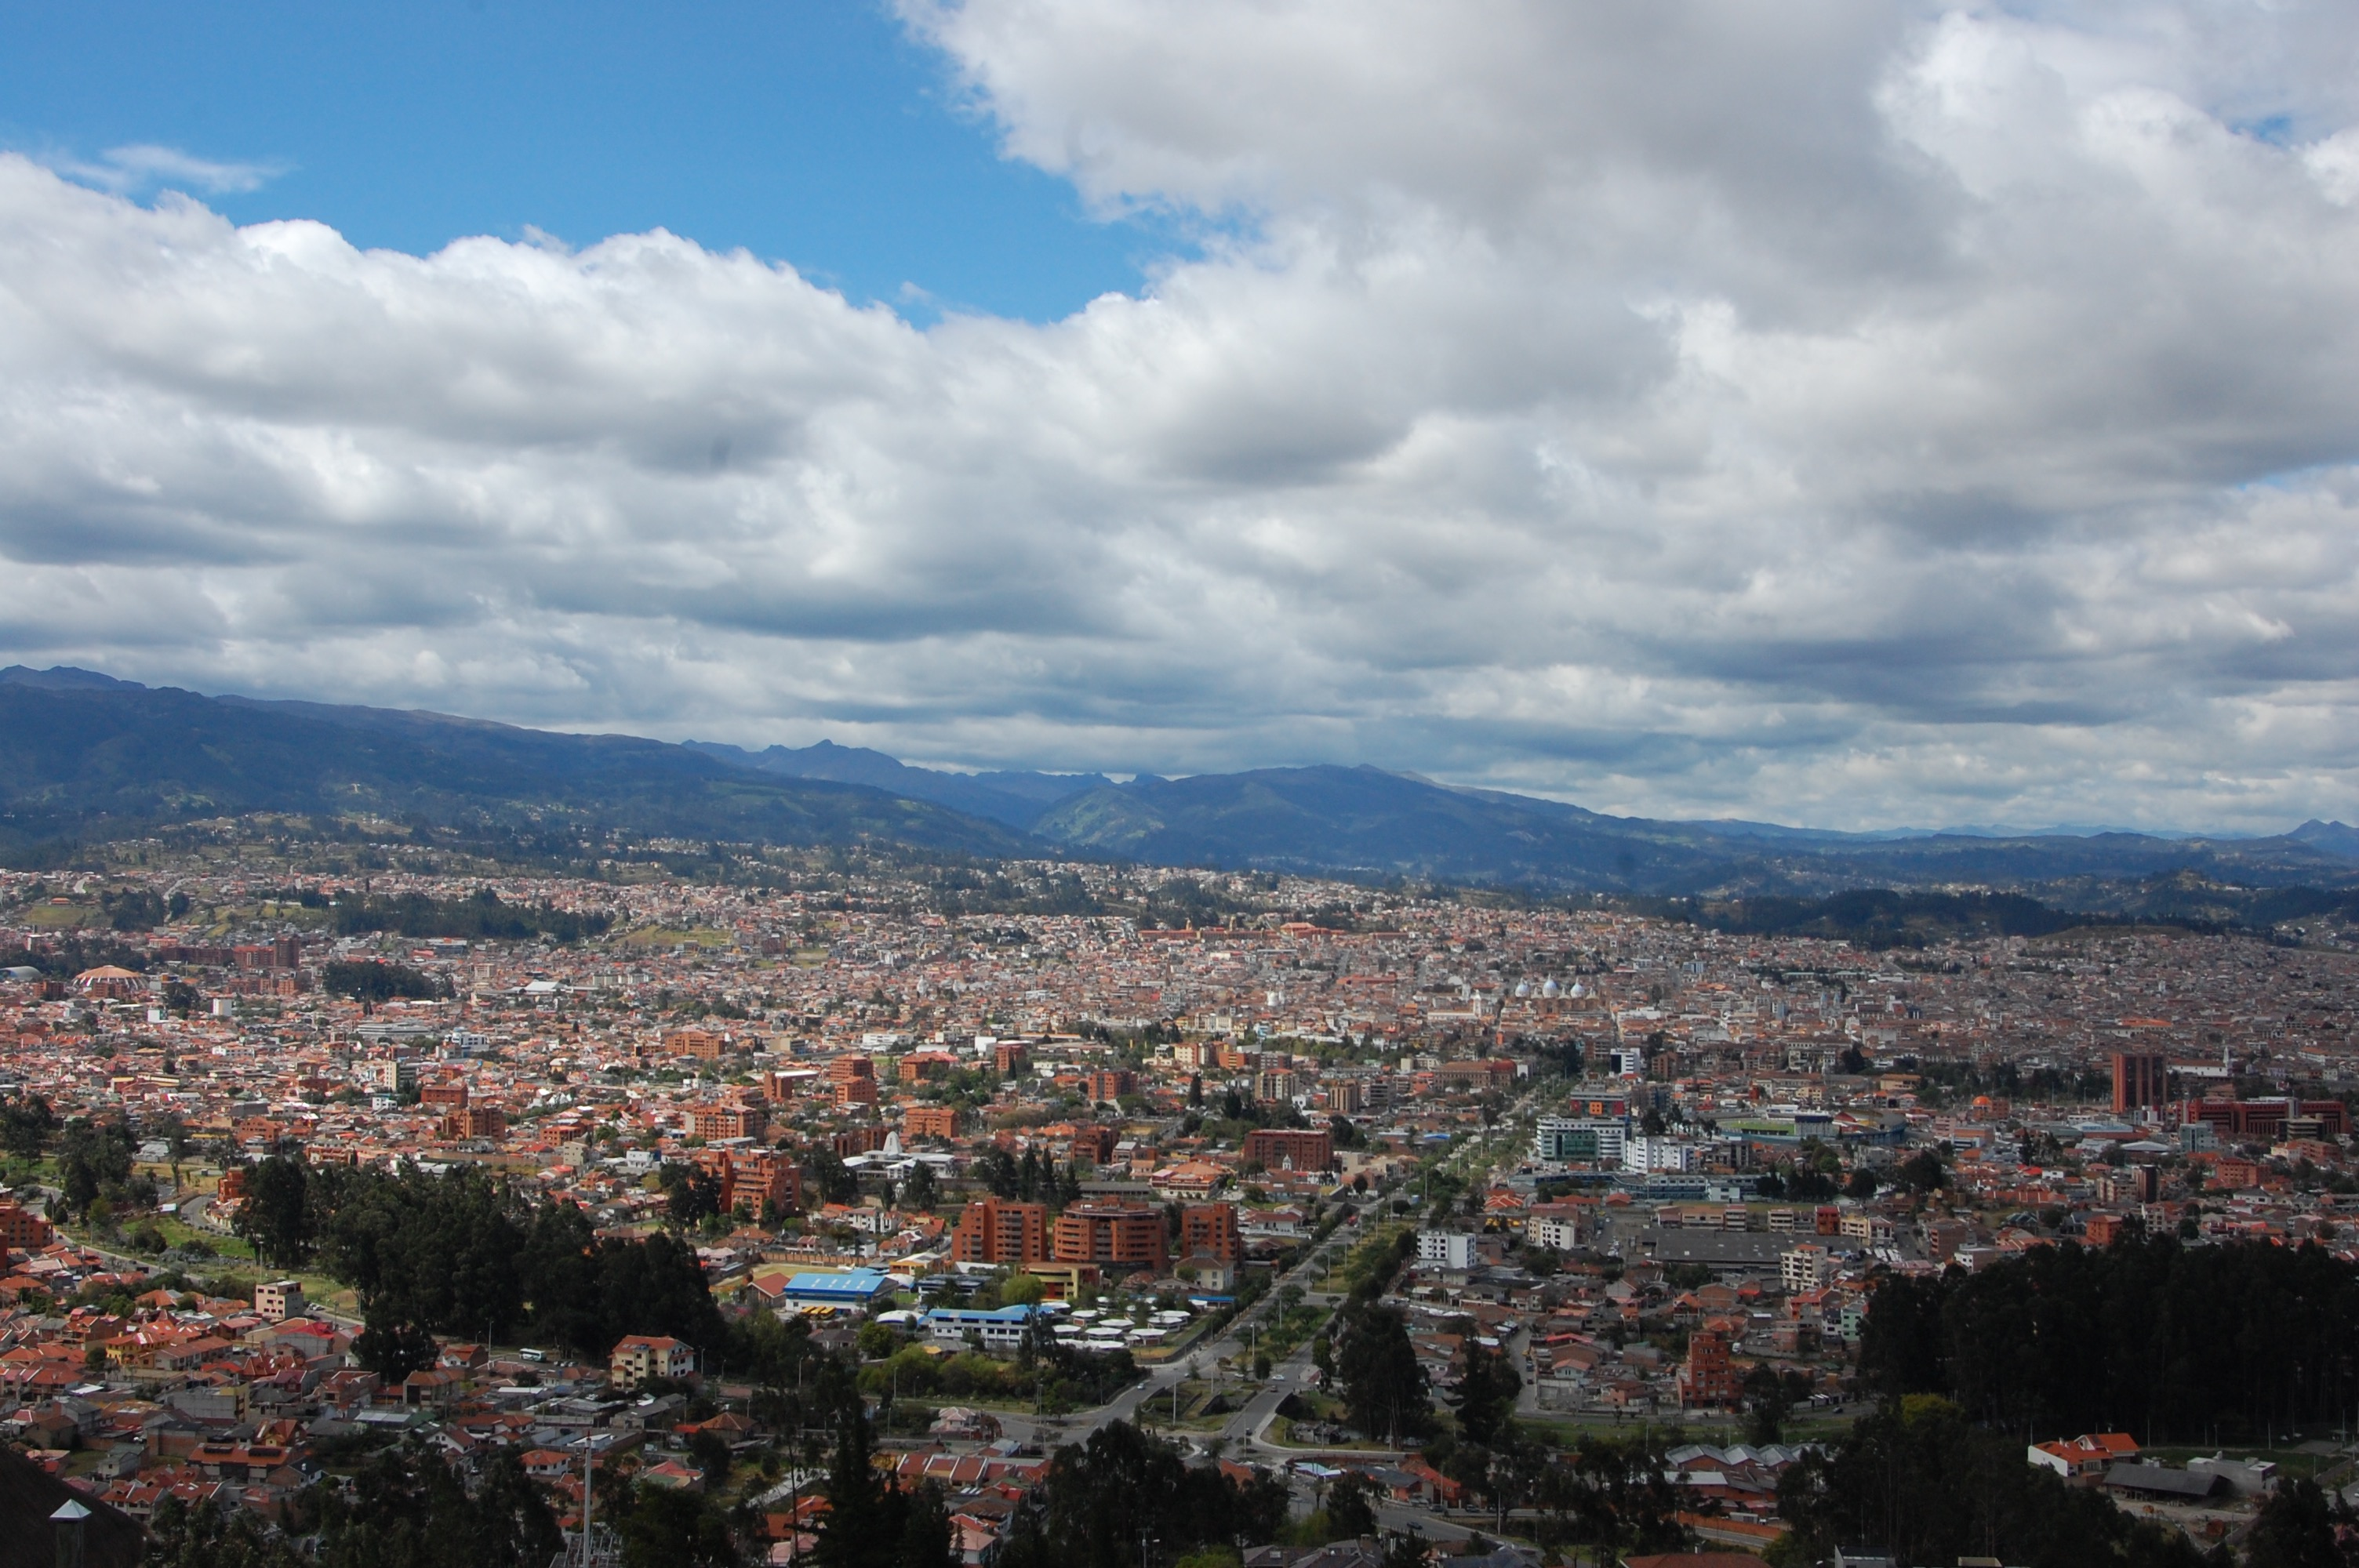 Views over Cuenca, Ecuador